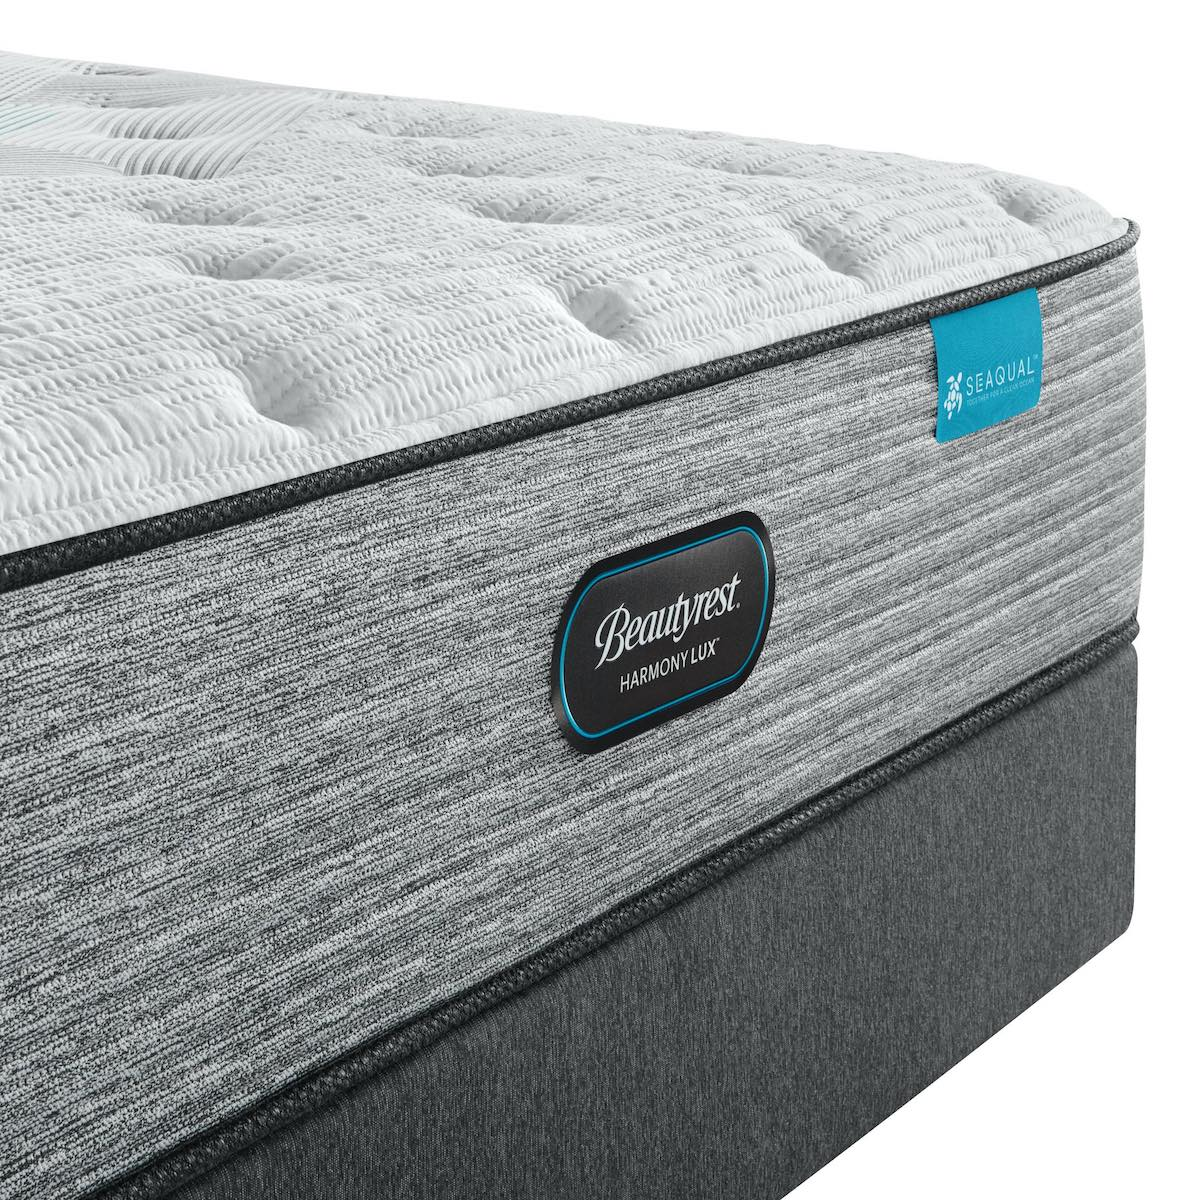 Beautyrest® Harmony Lux Carbon Series